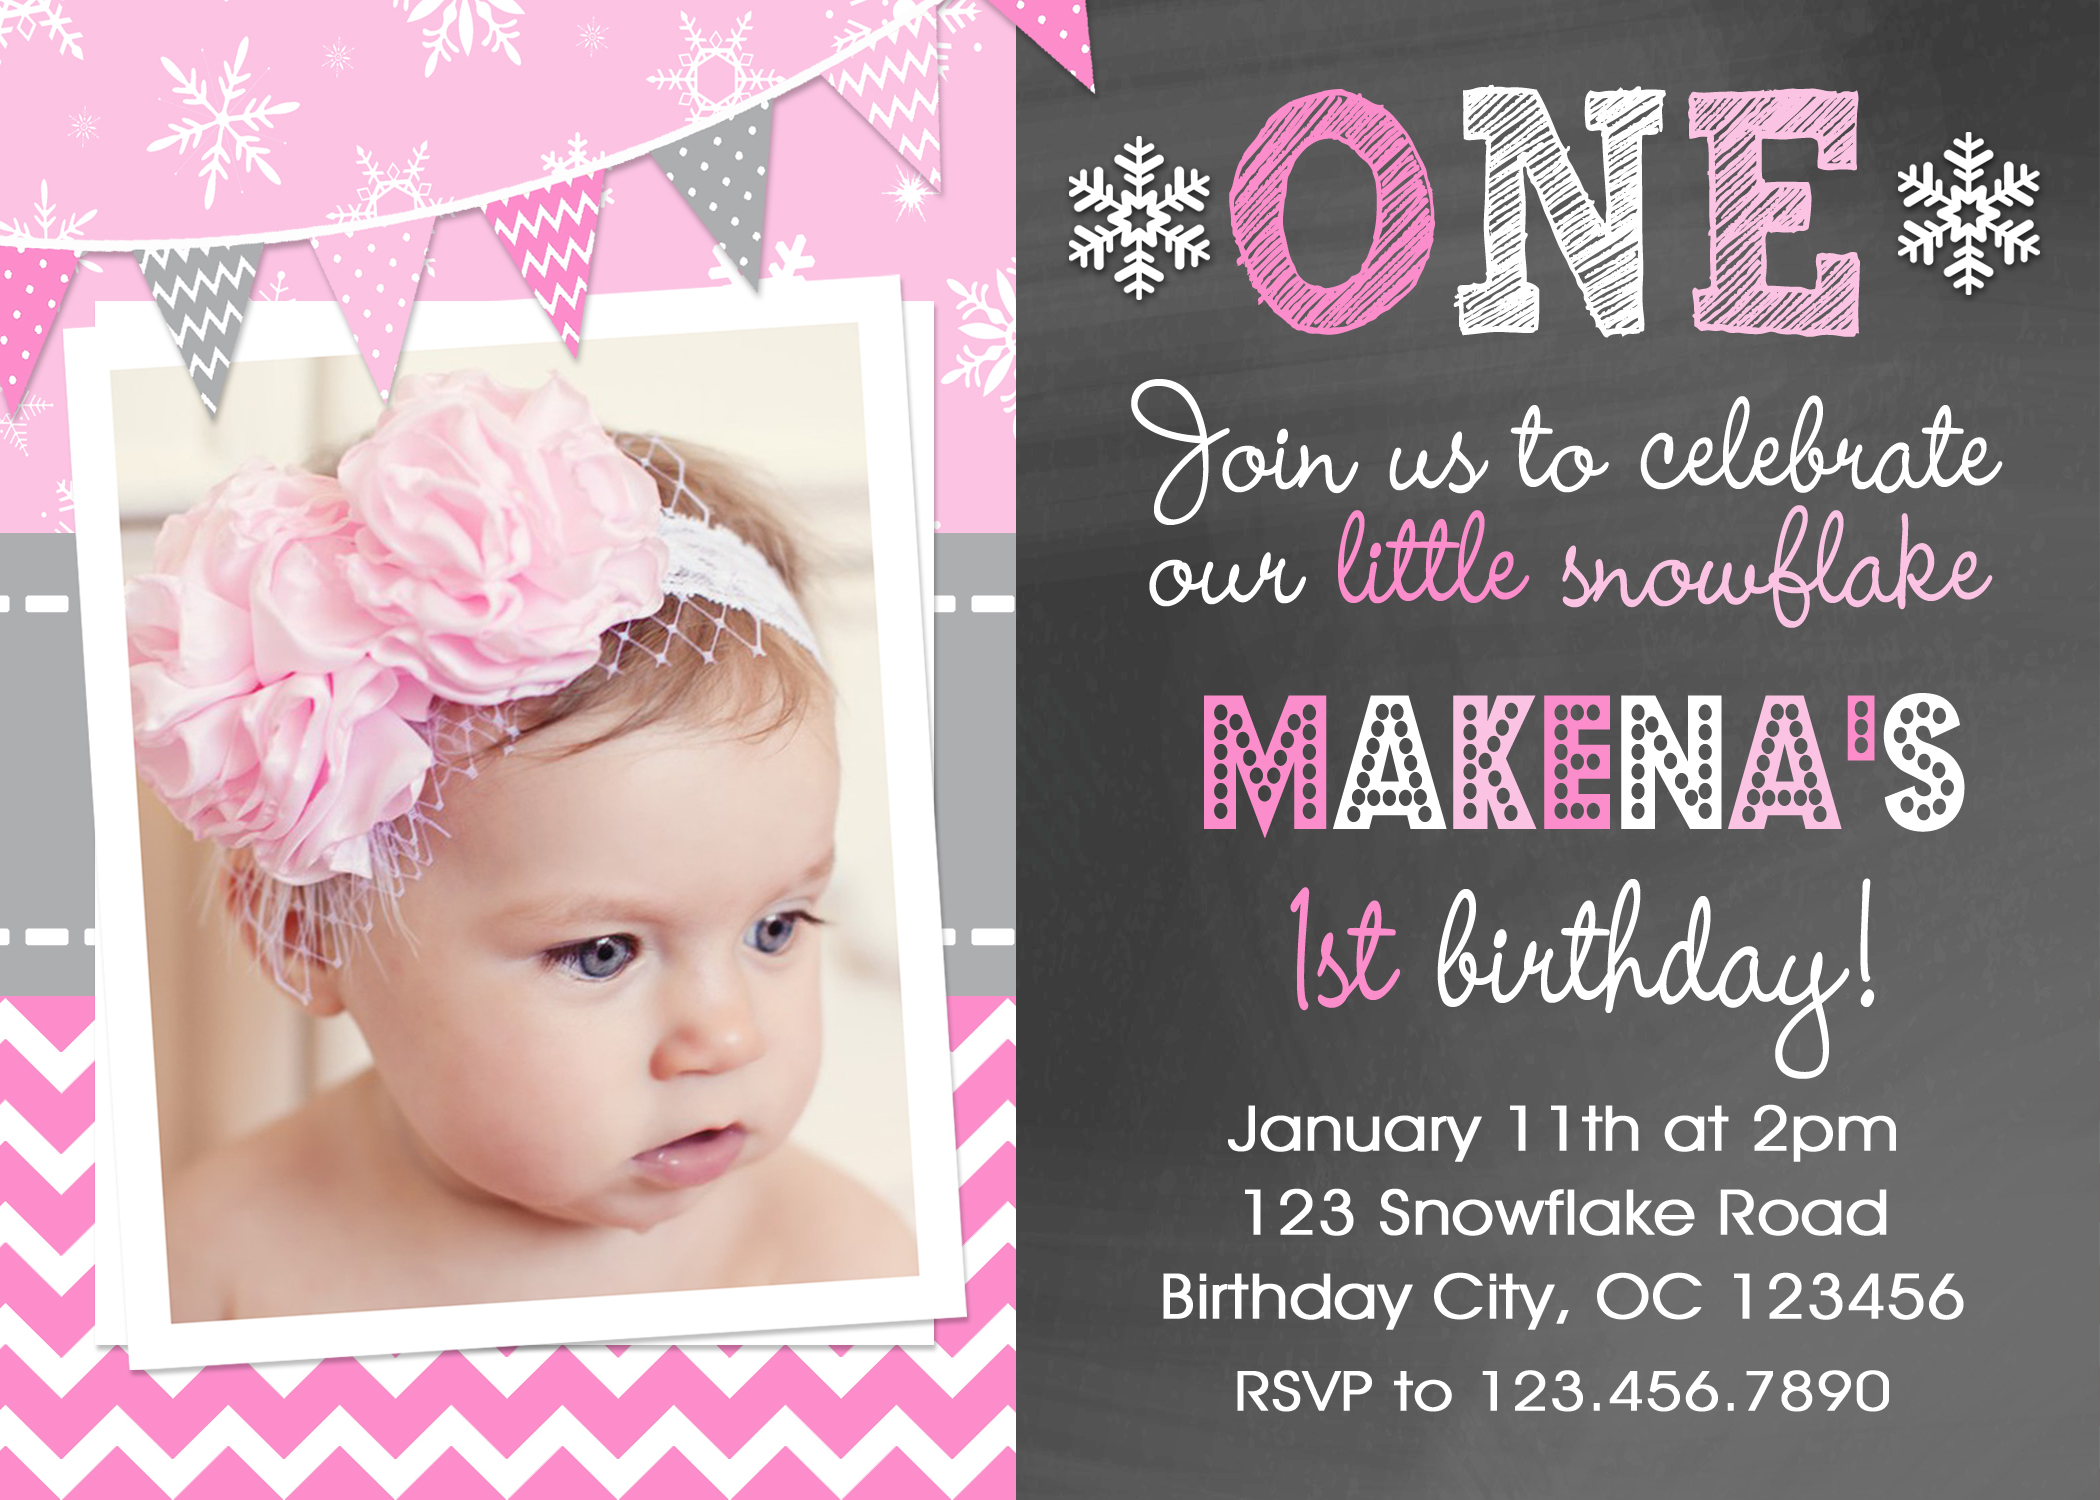 Snowflake printable birthday invitations girls winter snowflake party girls printable birthday invites filmwisefo